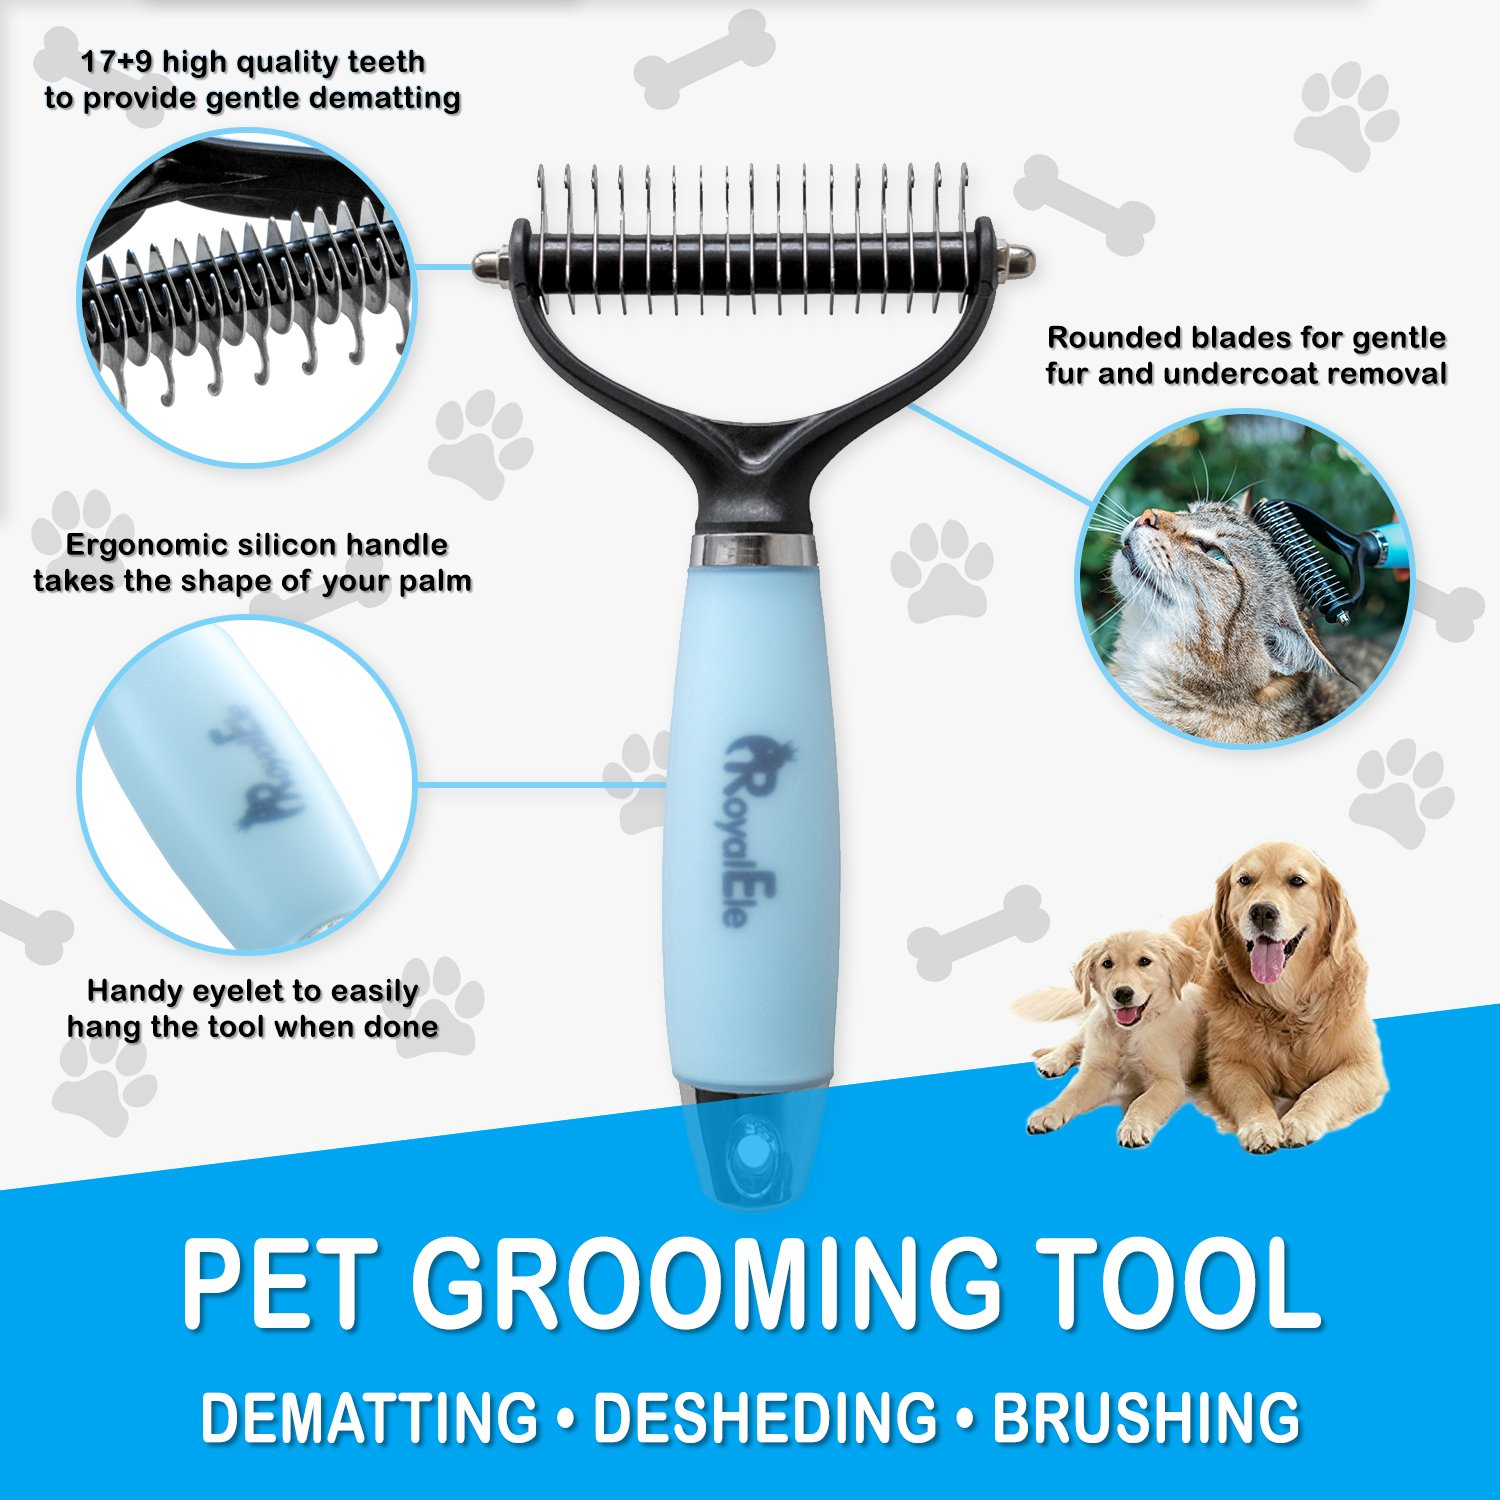 Professional Grade Dematting Comb for Cats & Dogs | 2 Sided Pet Grooming Tool with Round Blades | Easy Removal of Undercoat Mats & Tangles | Safe Massaging Rake | No More Shedding Hair by RoyalEle (Image #5)